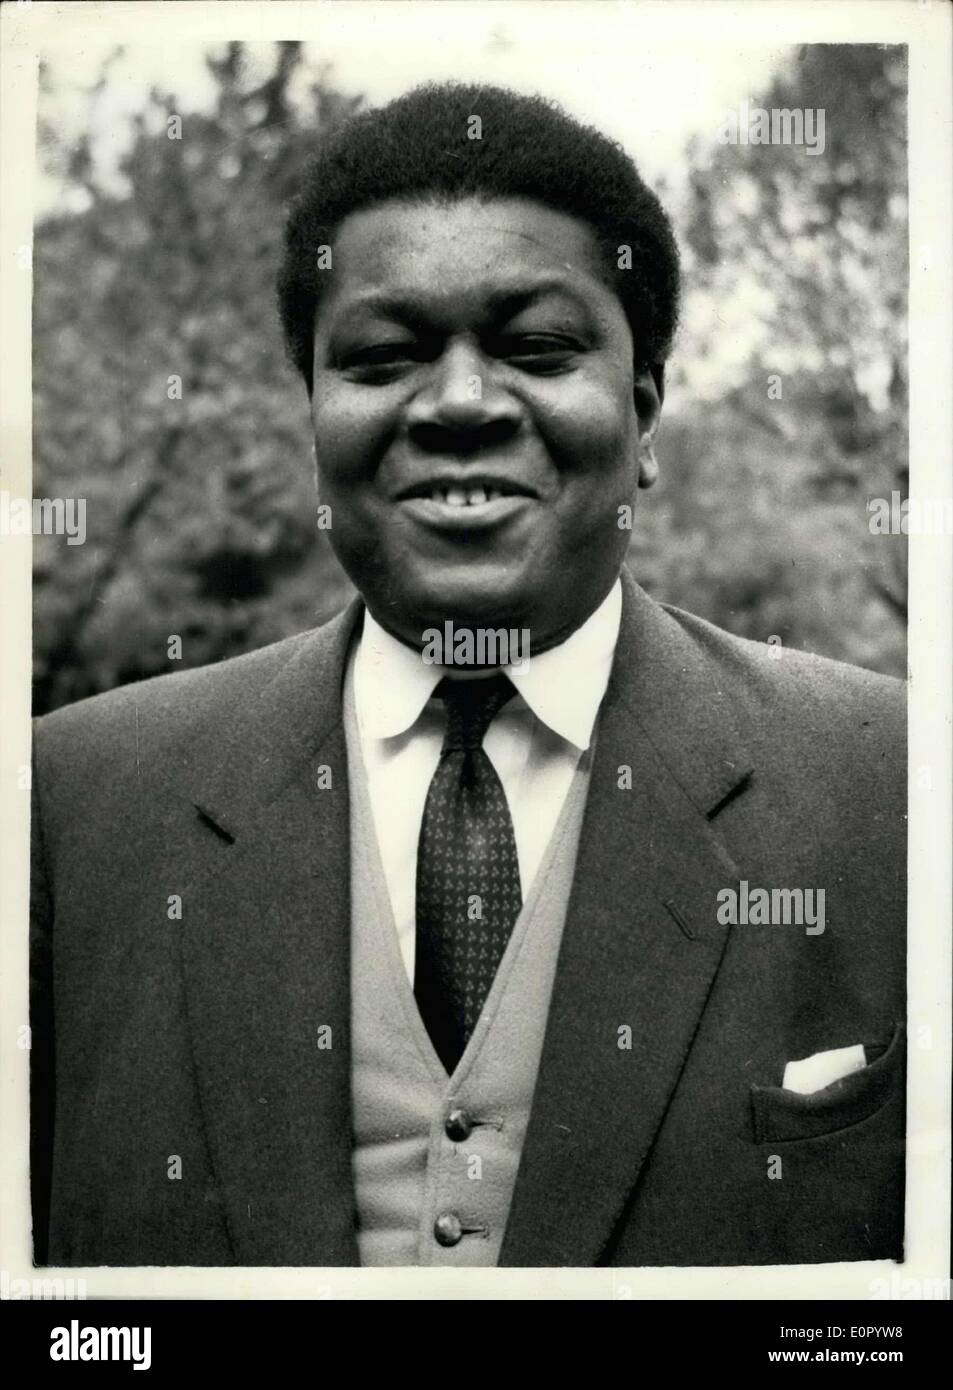 May 07, 1957 - Negro Doctor may stand for election to Westminster...Dr. David Pitt: The name of Dr. David Pitt a 6ft. 2 in. coloured man - born in Granada - has been forwarded by officials of the Hampatead Labour Party as candidate at the next election. If the party chief's approve the selection - Dr. Pitt could become an M.P.. He has lived in Britain - practising as a doctor since 1947.. Dr. Pitt says that he is well aware of the colour bar - but if he is elected to stand for Parliament - colour would not enter in to it. Photo shows Dr. David Pitt. - Stock Image